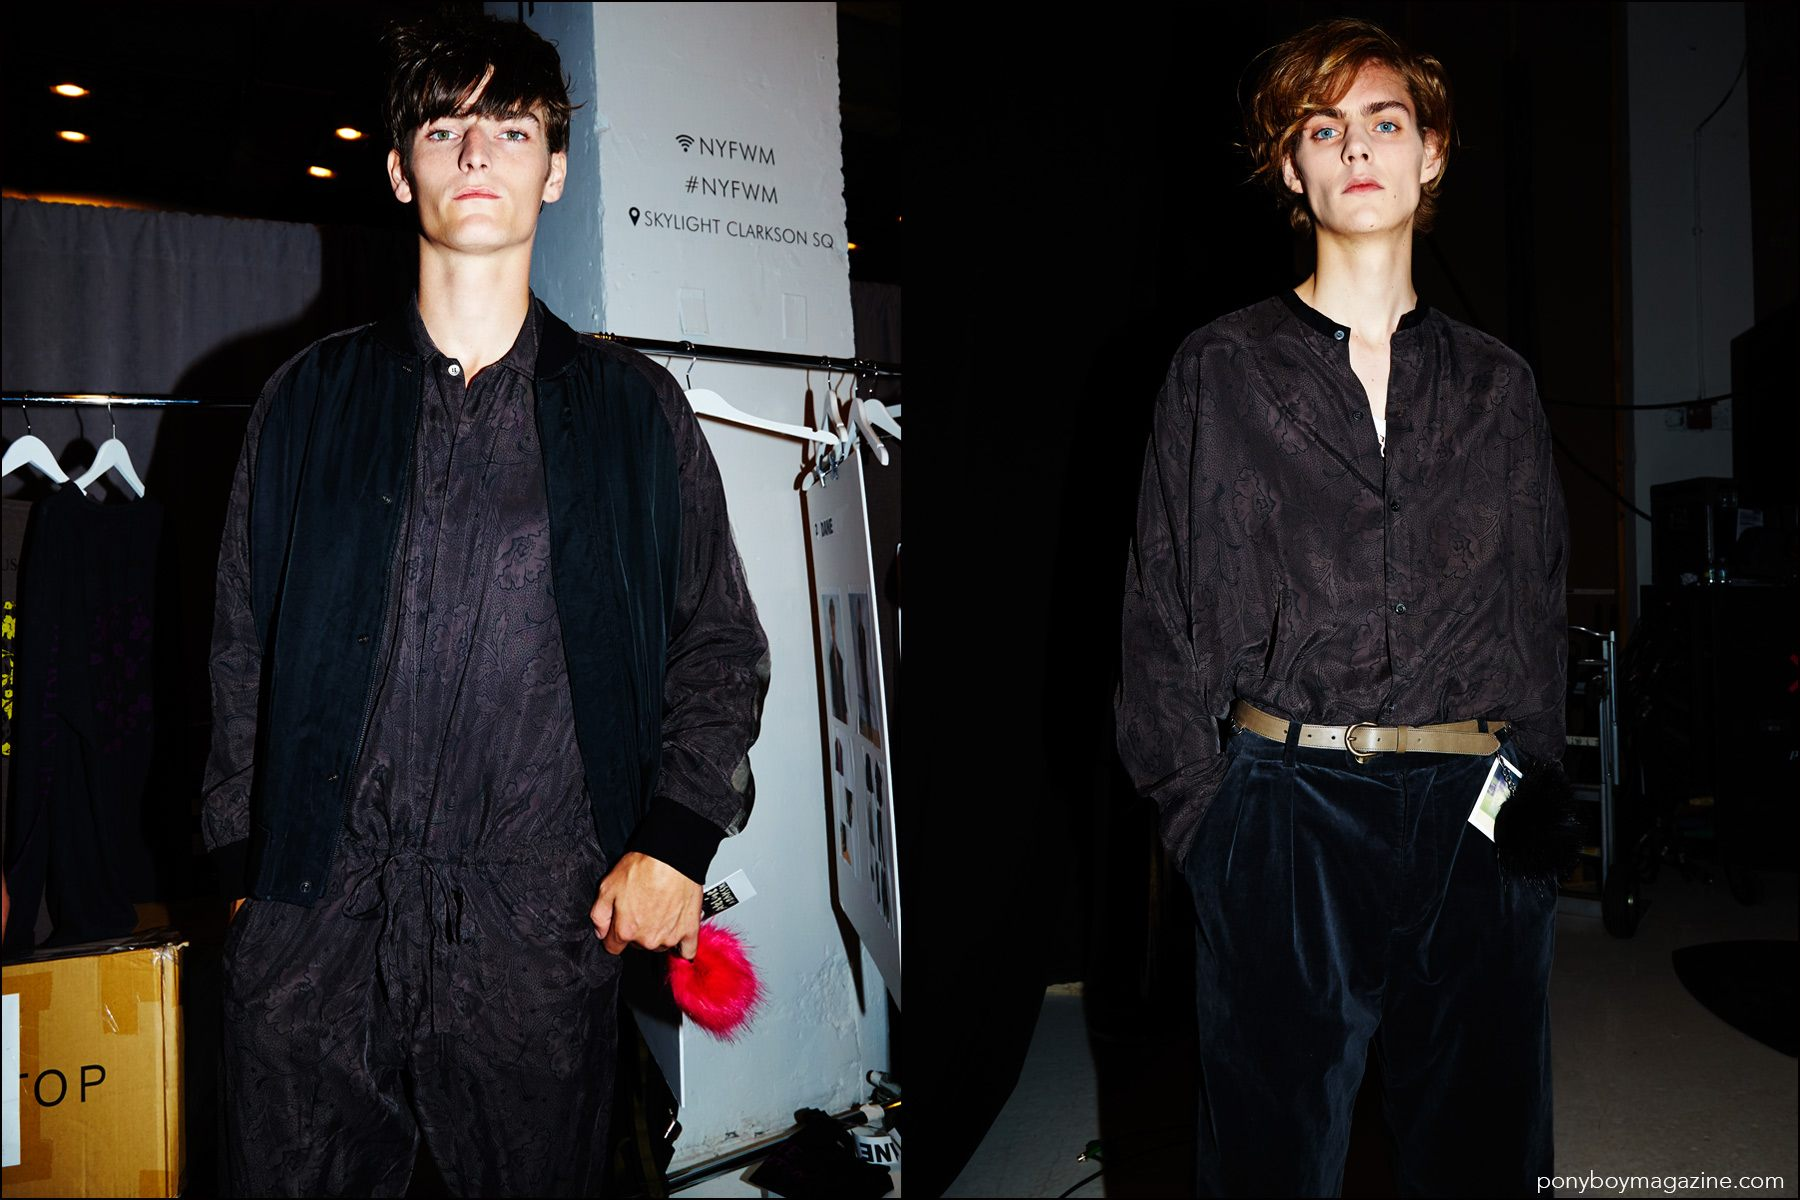 Male models Alexander Beck and Mats Van Snippenberg photographed backstage at Robert Geller Spring/Summer 2017 menswear show. Photography by Alexander Thompson for Ponyboy magazine NY.